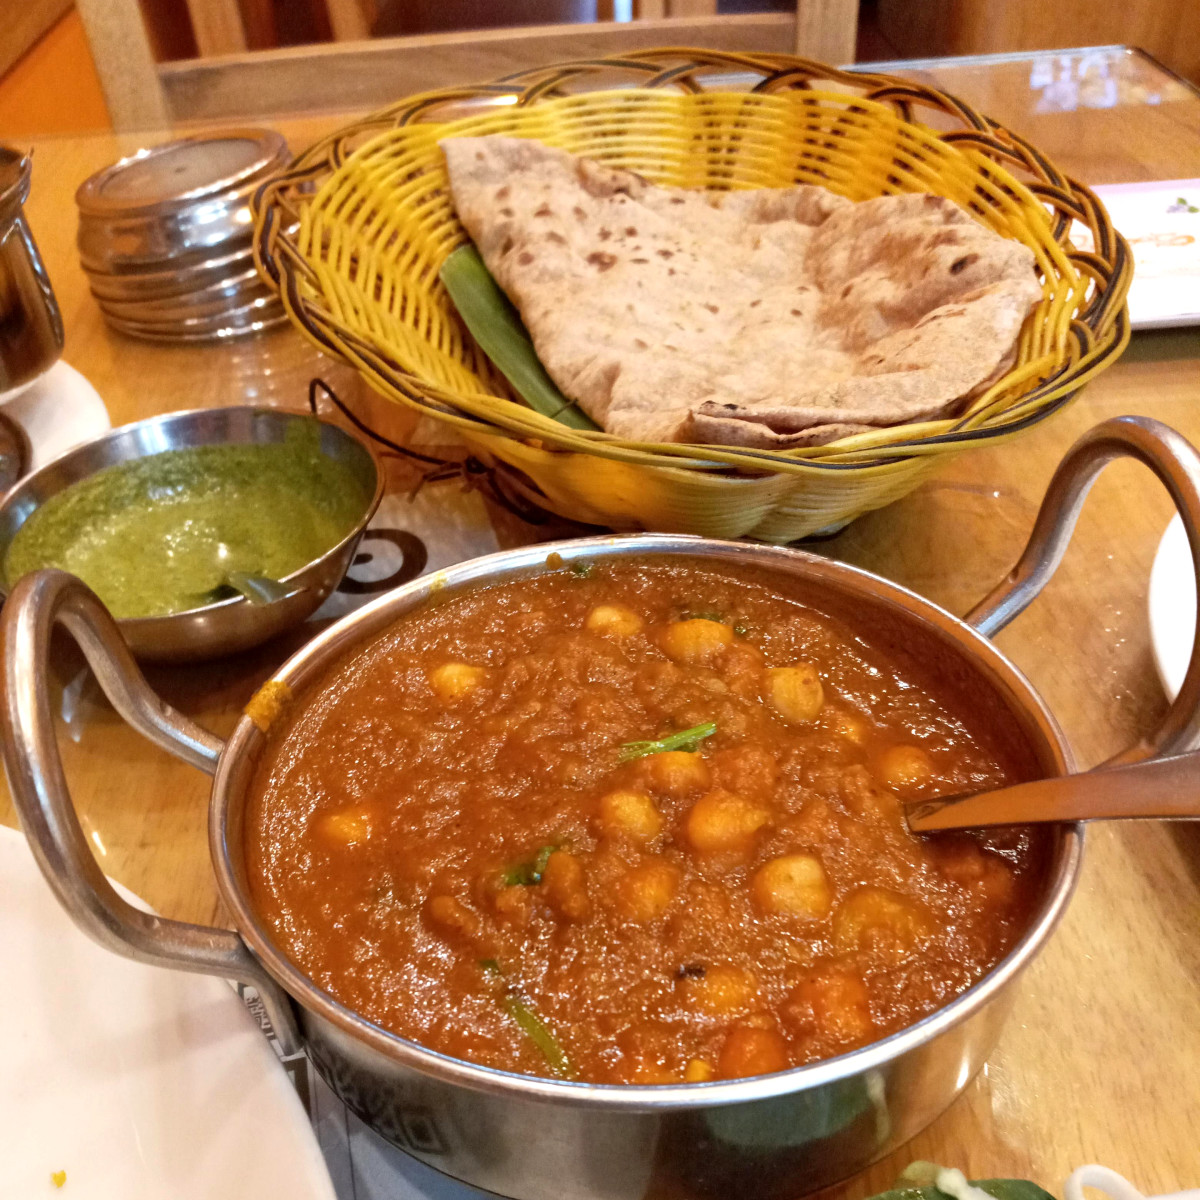 Indian restaurants will often remove the cream, ghee, or other non-vegan ingredients from curries on request.